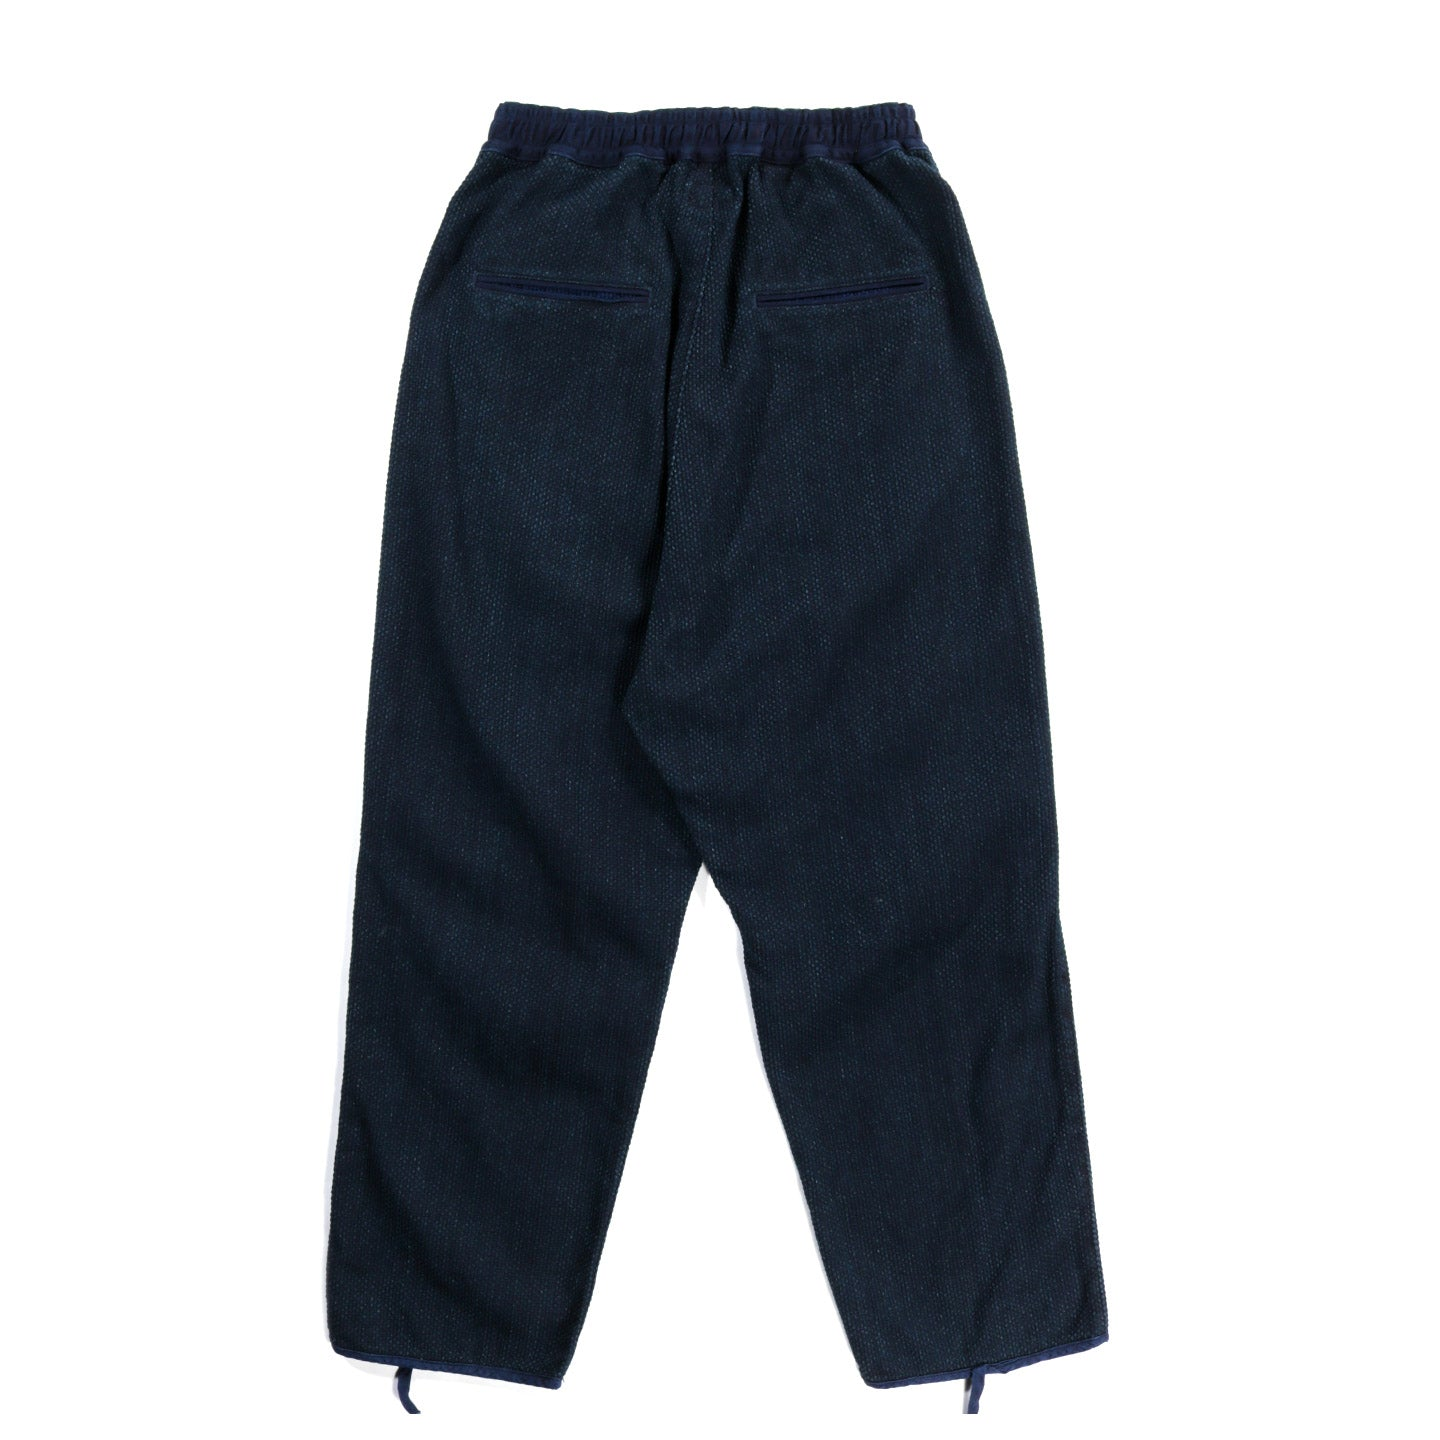 KAPITAL KOUNTRY DO-GI CANVAS EASY PANTS BONE INDIGO